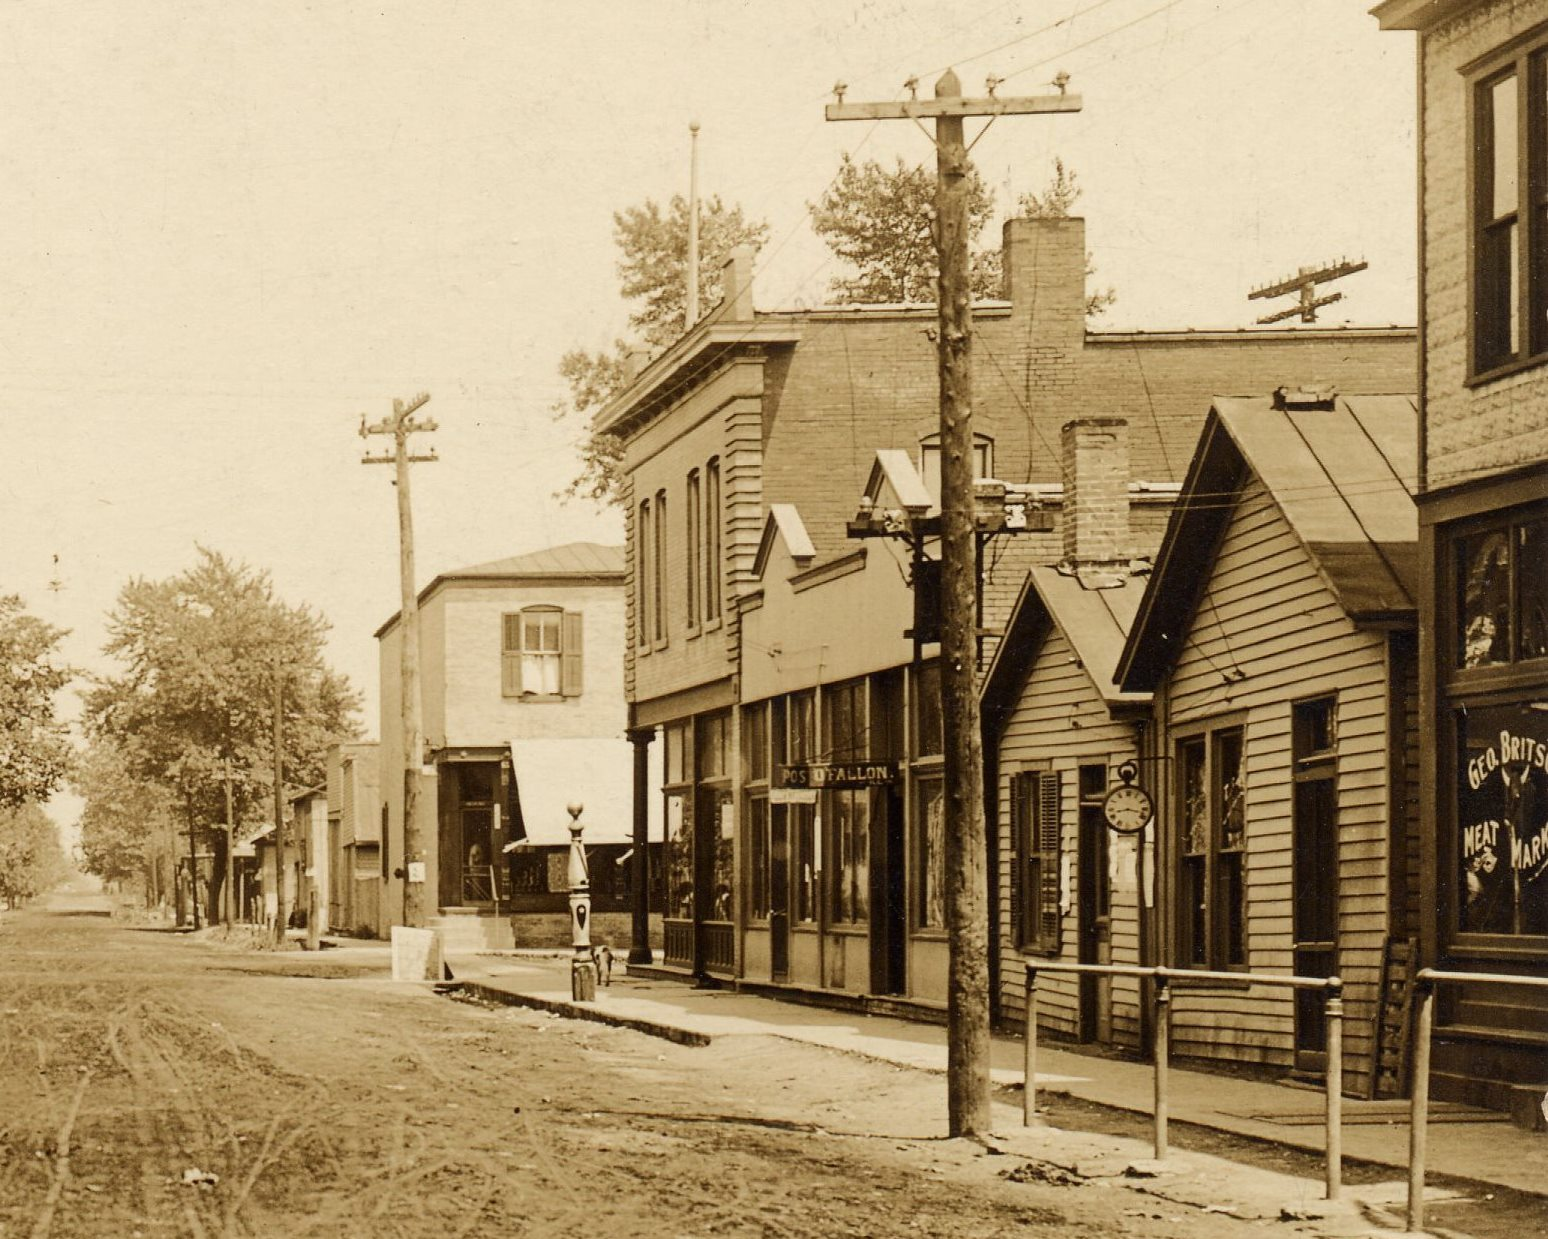 Lincoln and State ca 1910